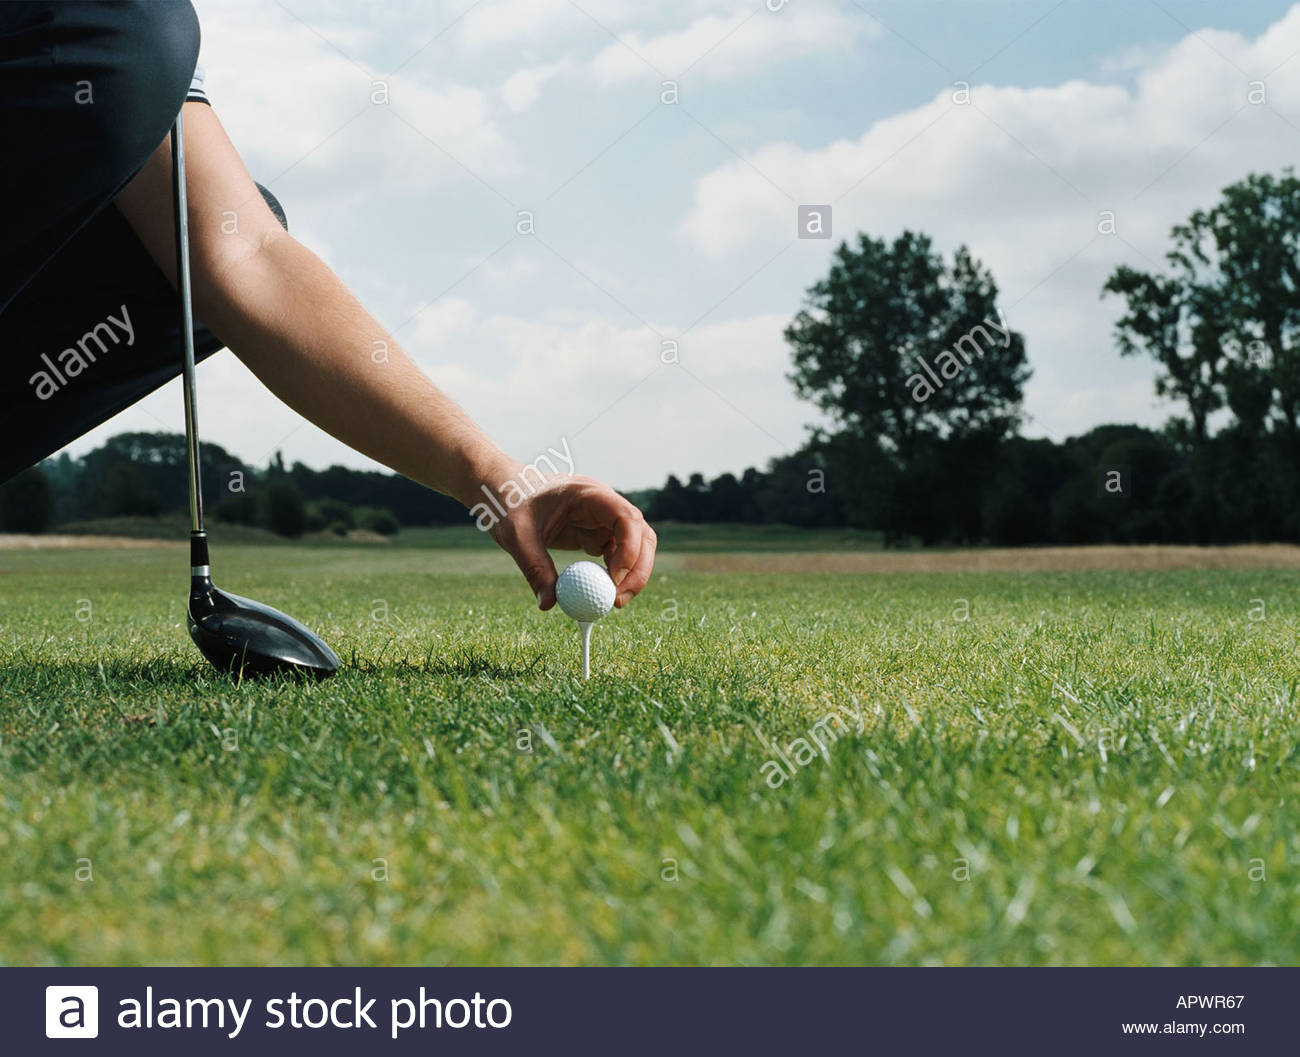 Placing a golf ball on the tee - Stock Image